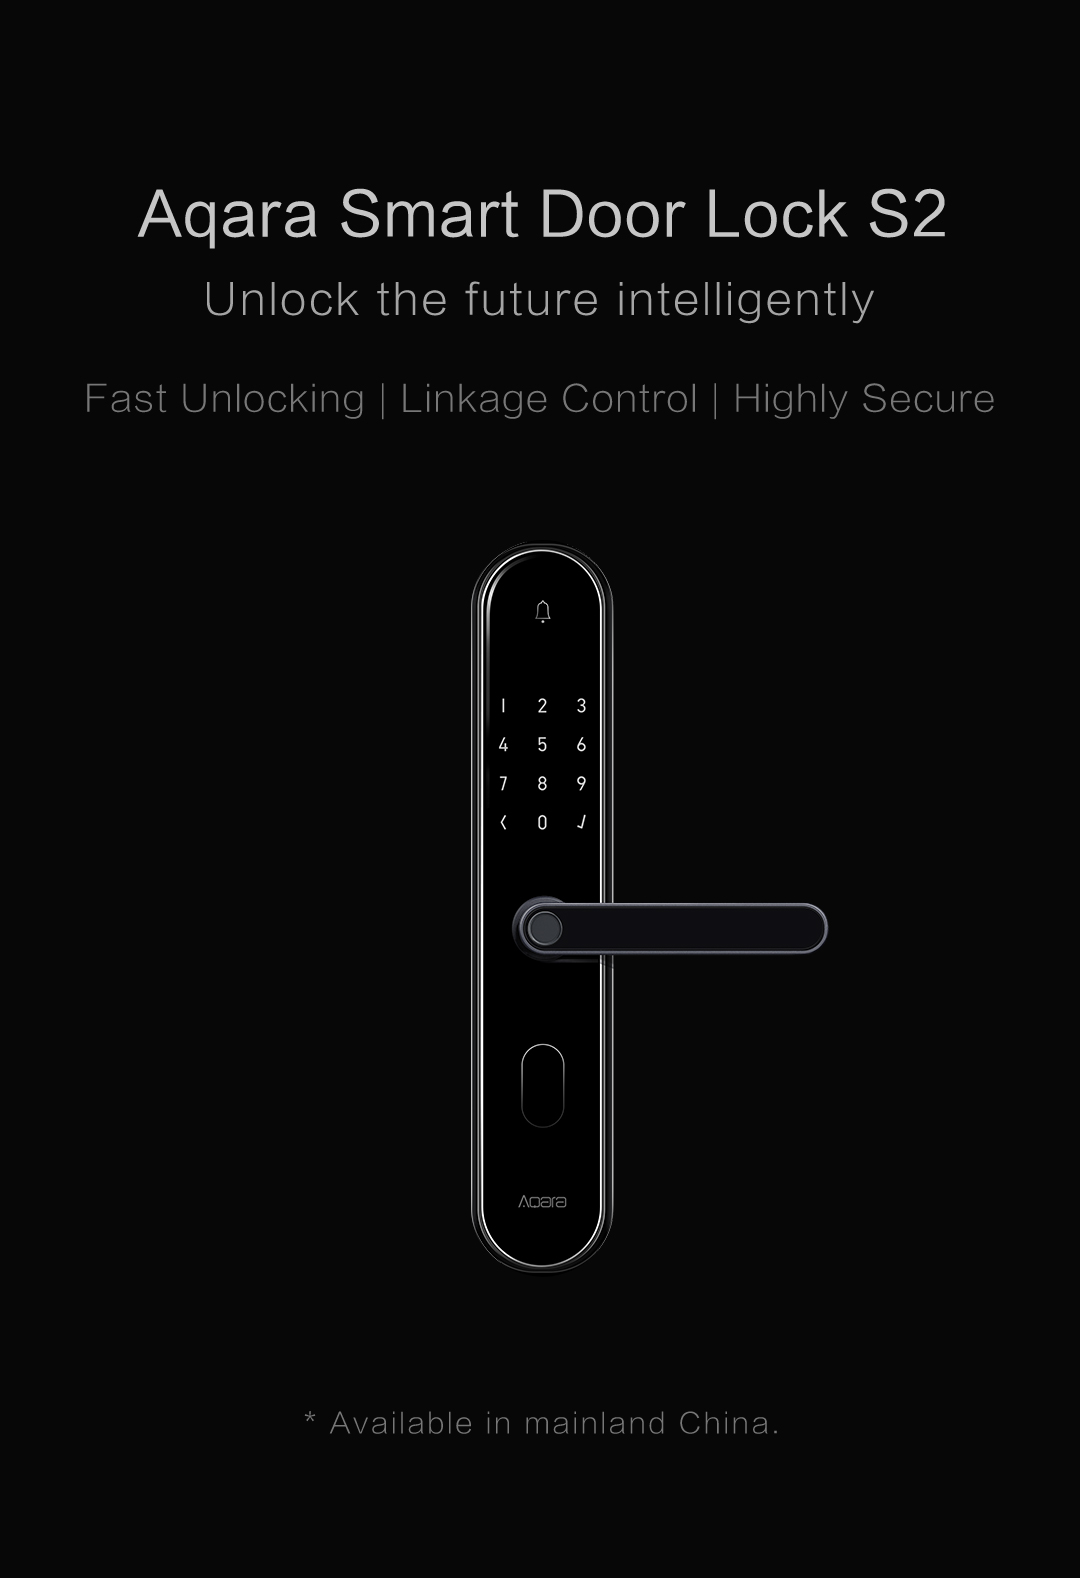 Aqara smart lock S2 - Unlock the future intelligently